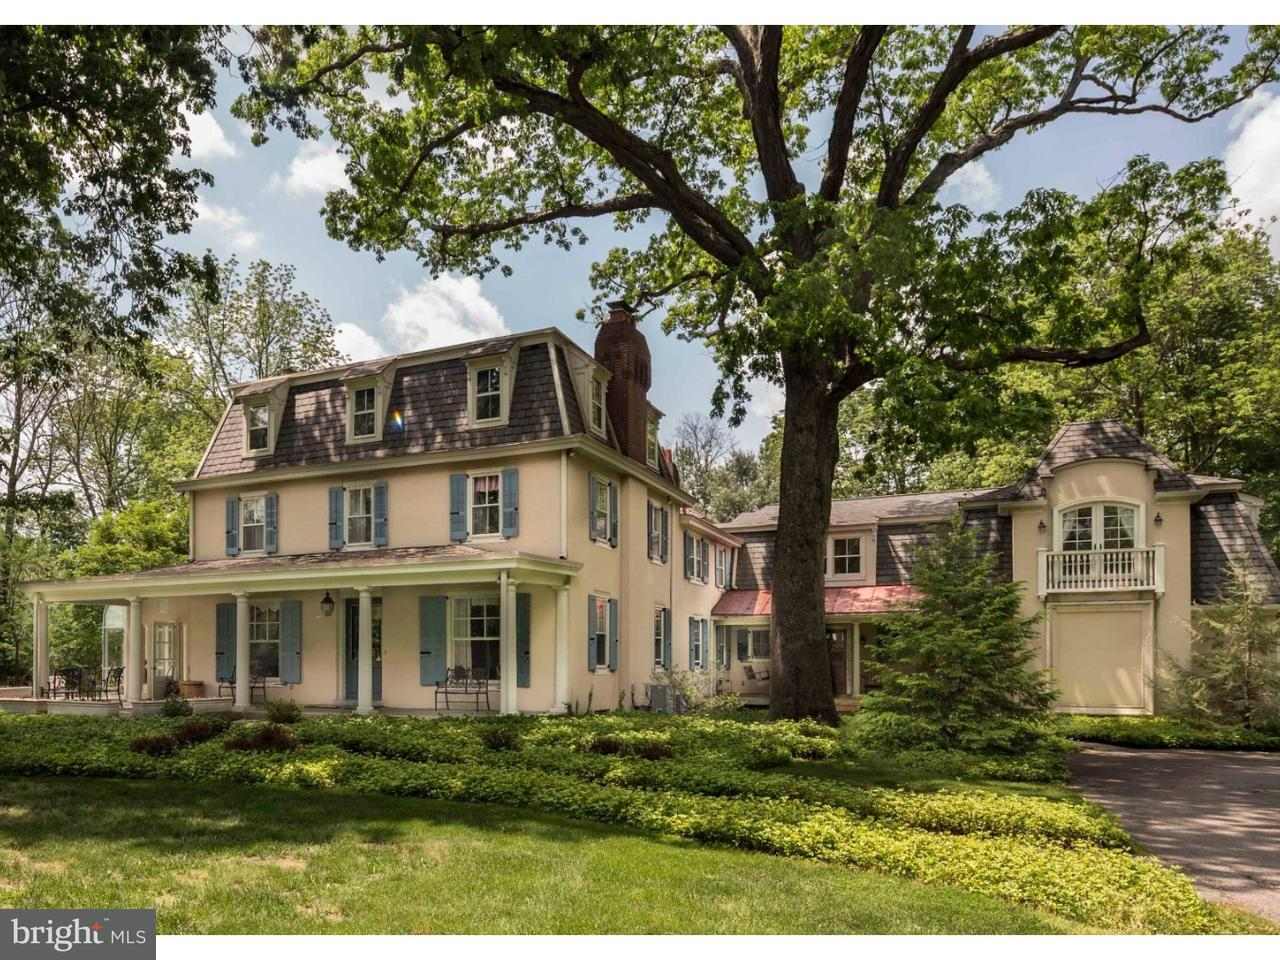 Single Family Home for Sale at 525 PENLLYN PIKE Blue Bell, Pennsylvania 19422 United States